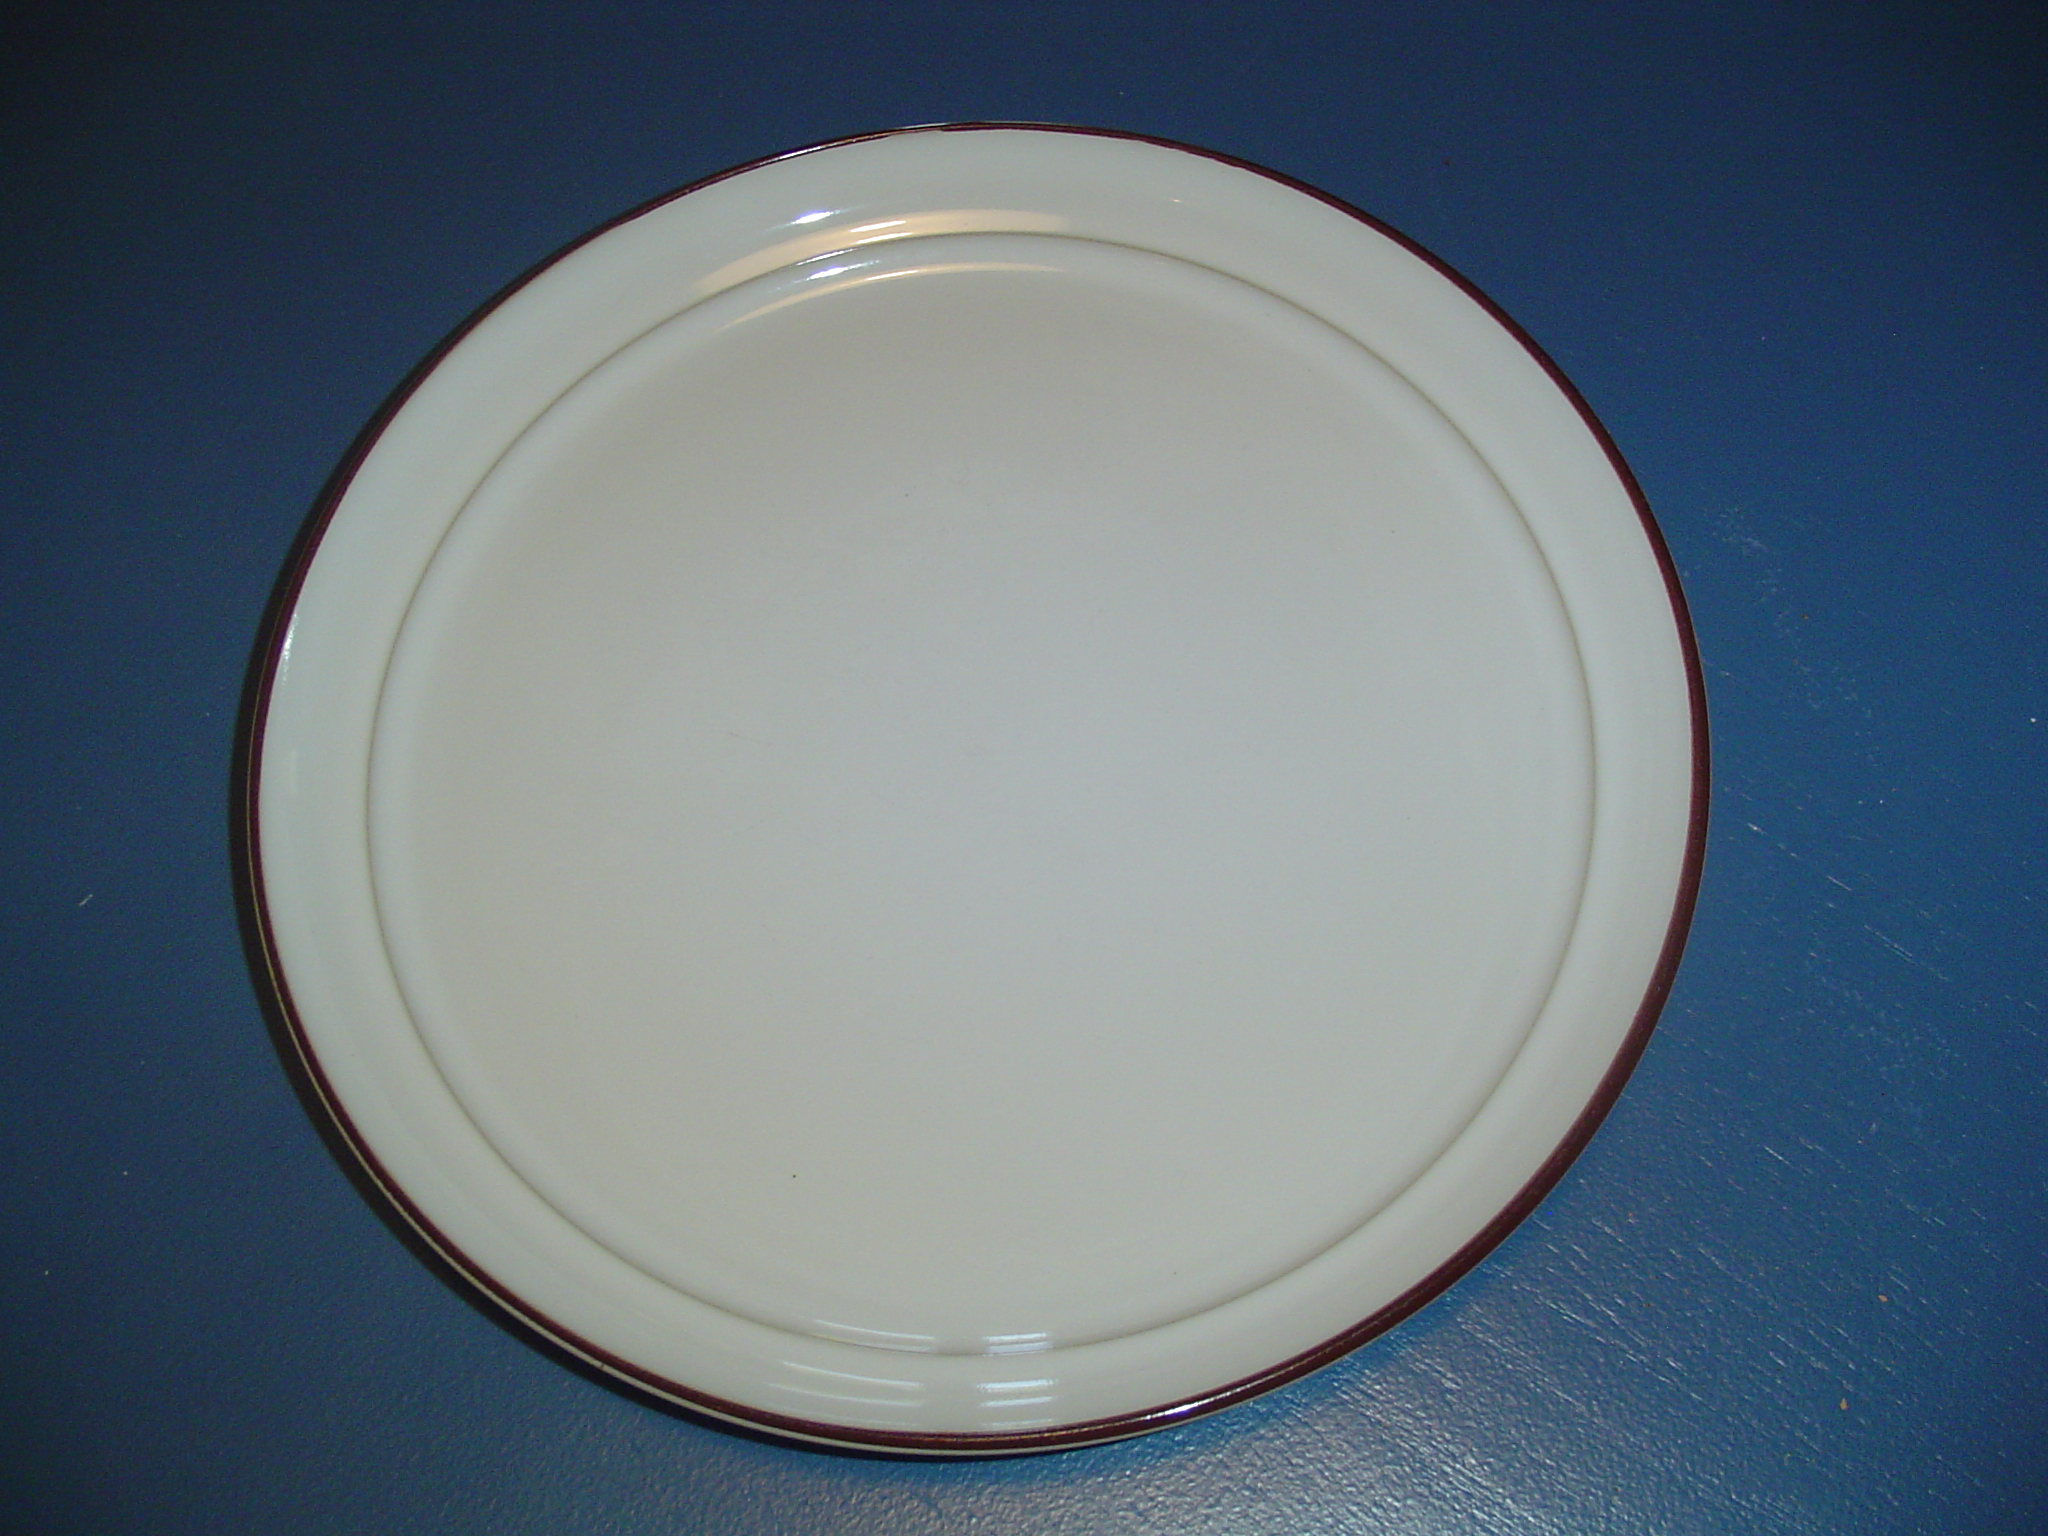 Noritake Marshmellow Dinner Plates Reduced 40%